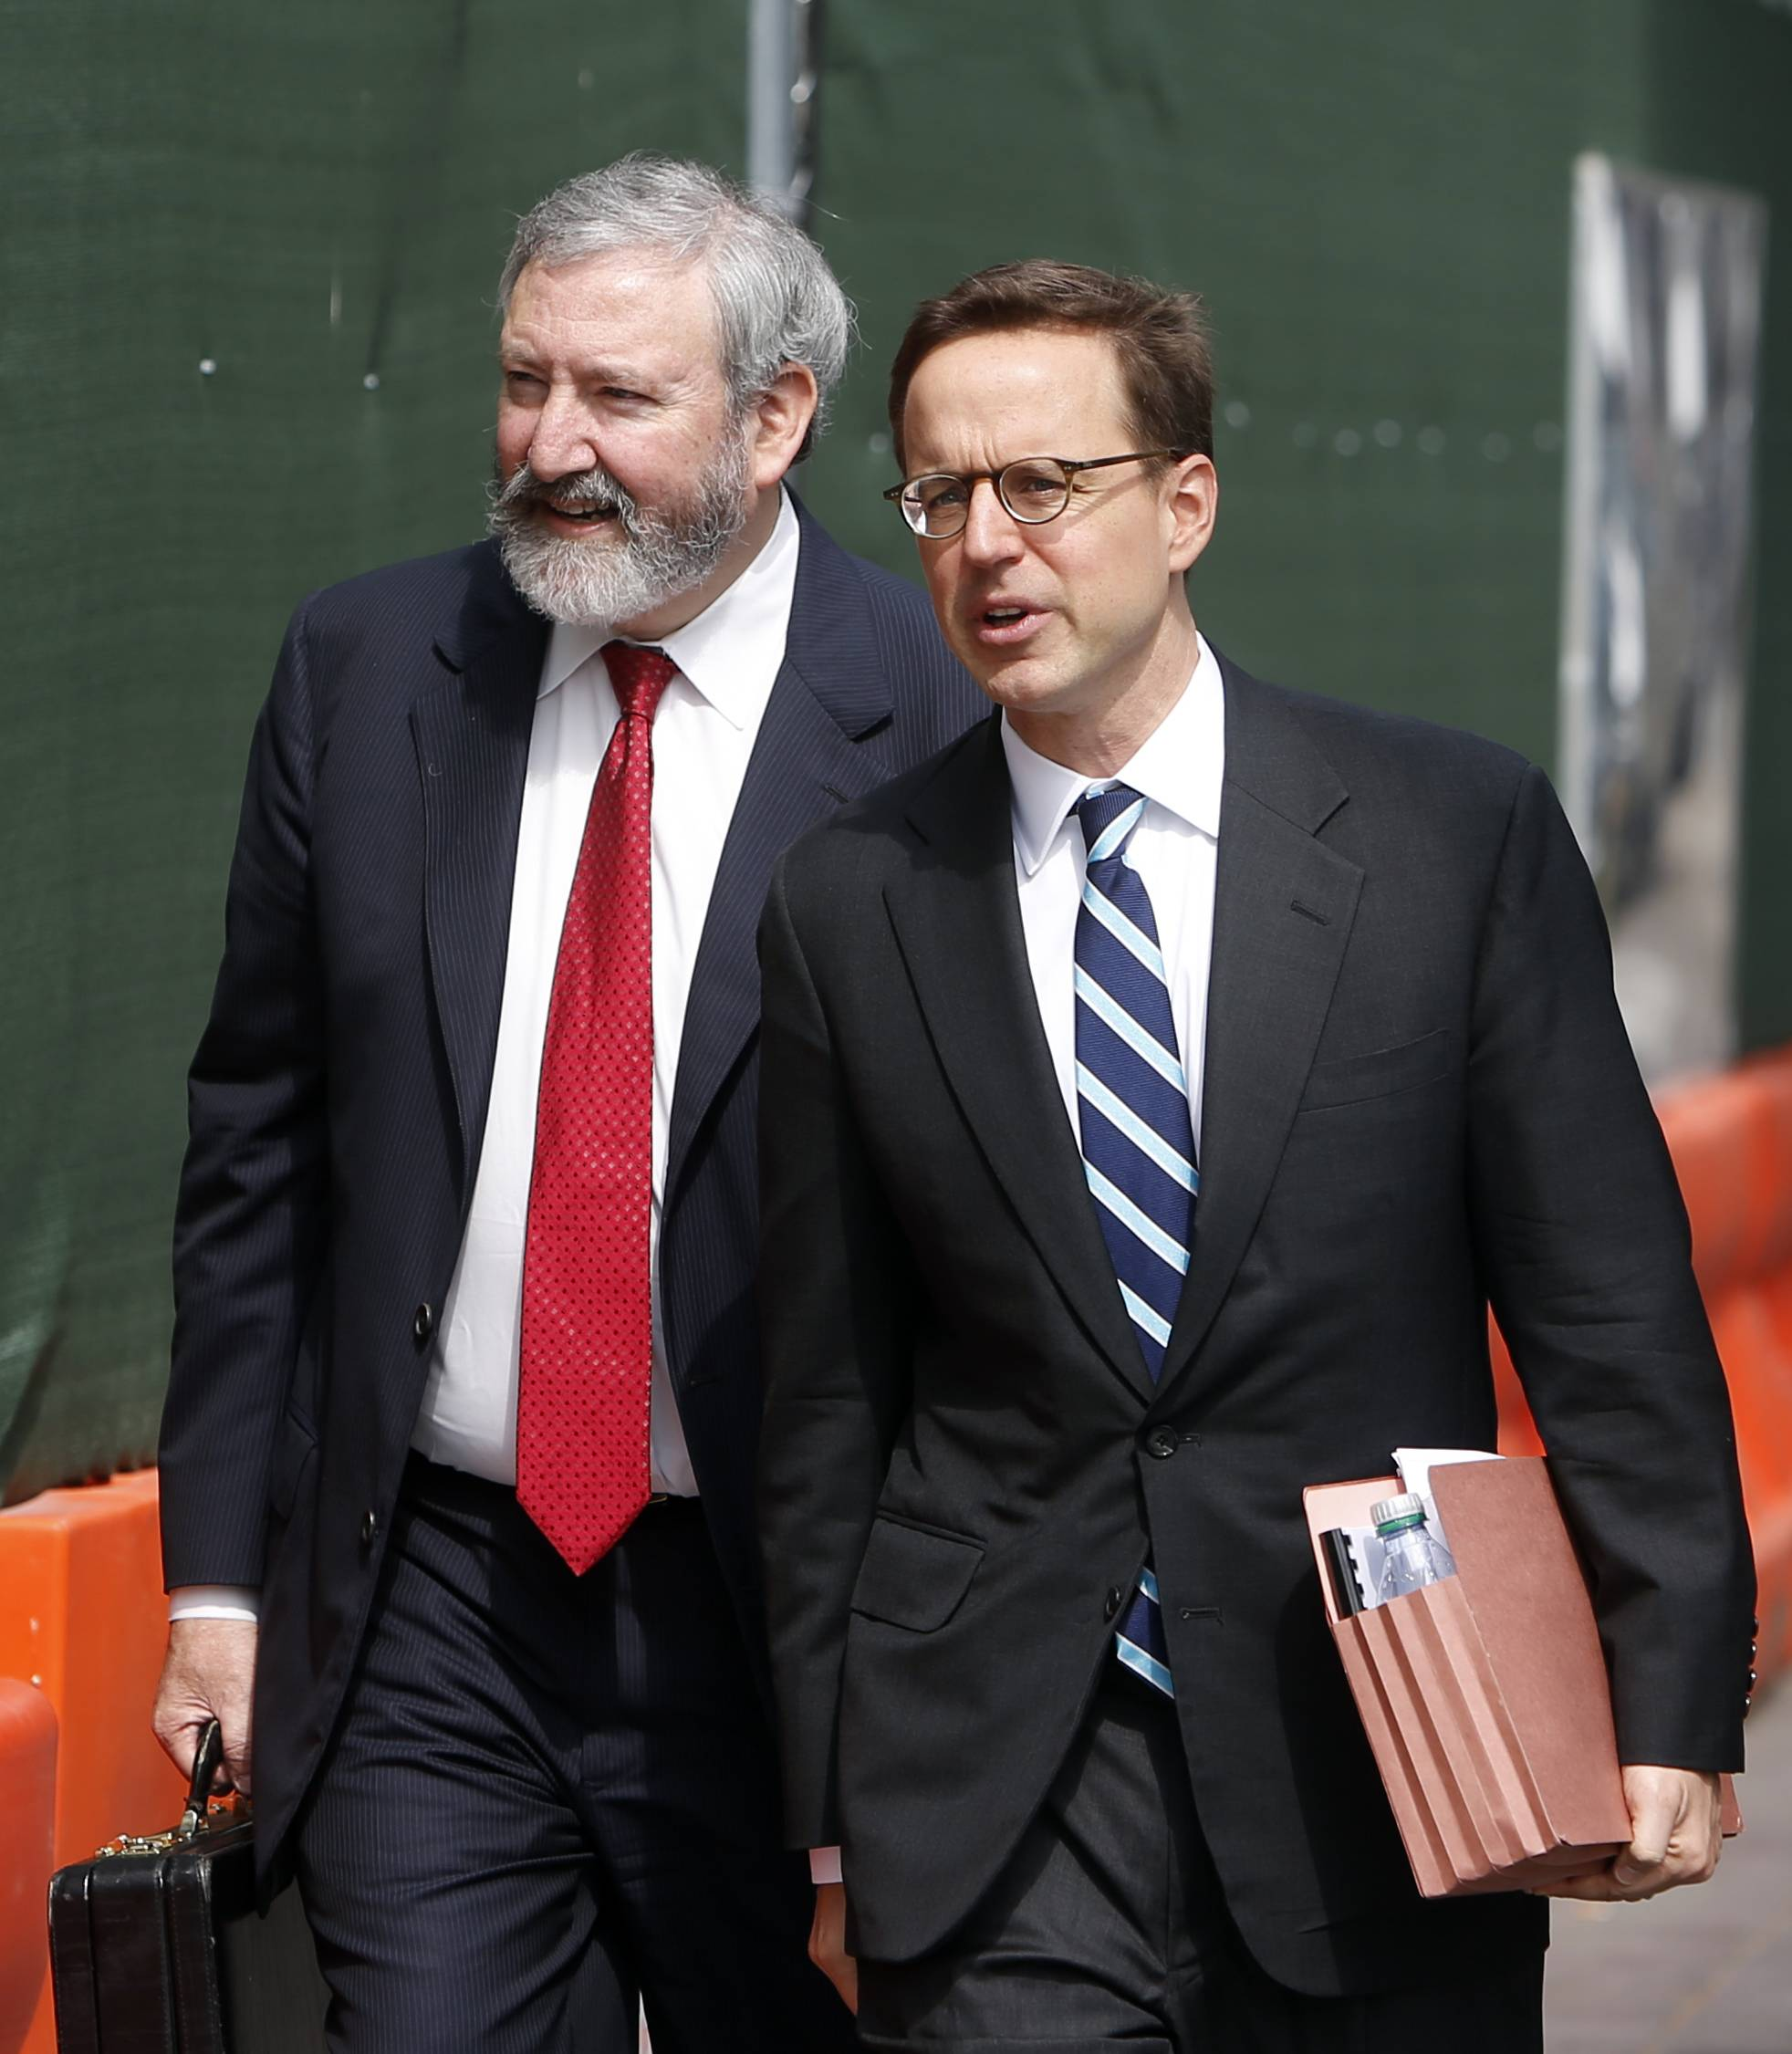 Jonathan Blackman, left, and Carmine Boccuzzi, lawyers representing Argentina, arrive at federal court in New York Friday for a hearing regarding the country's request to extend deadlines to repay a $1.65 billion debt to U.S. hedge funds.